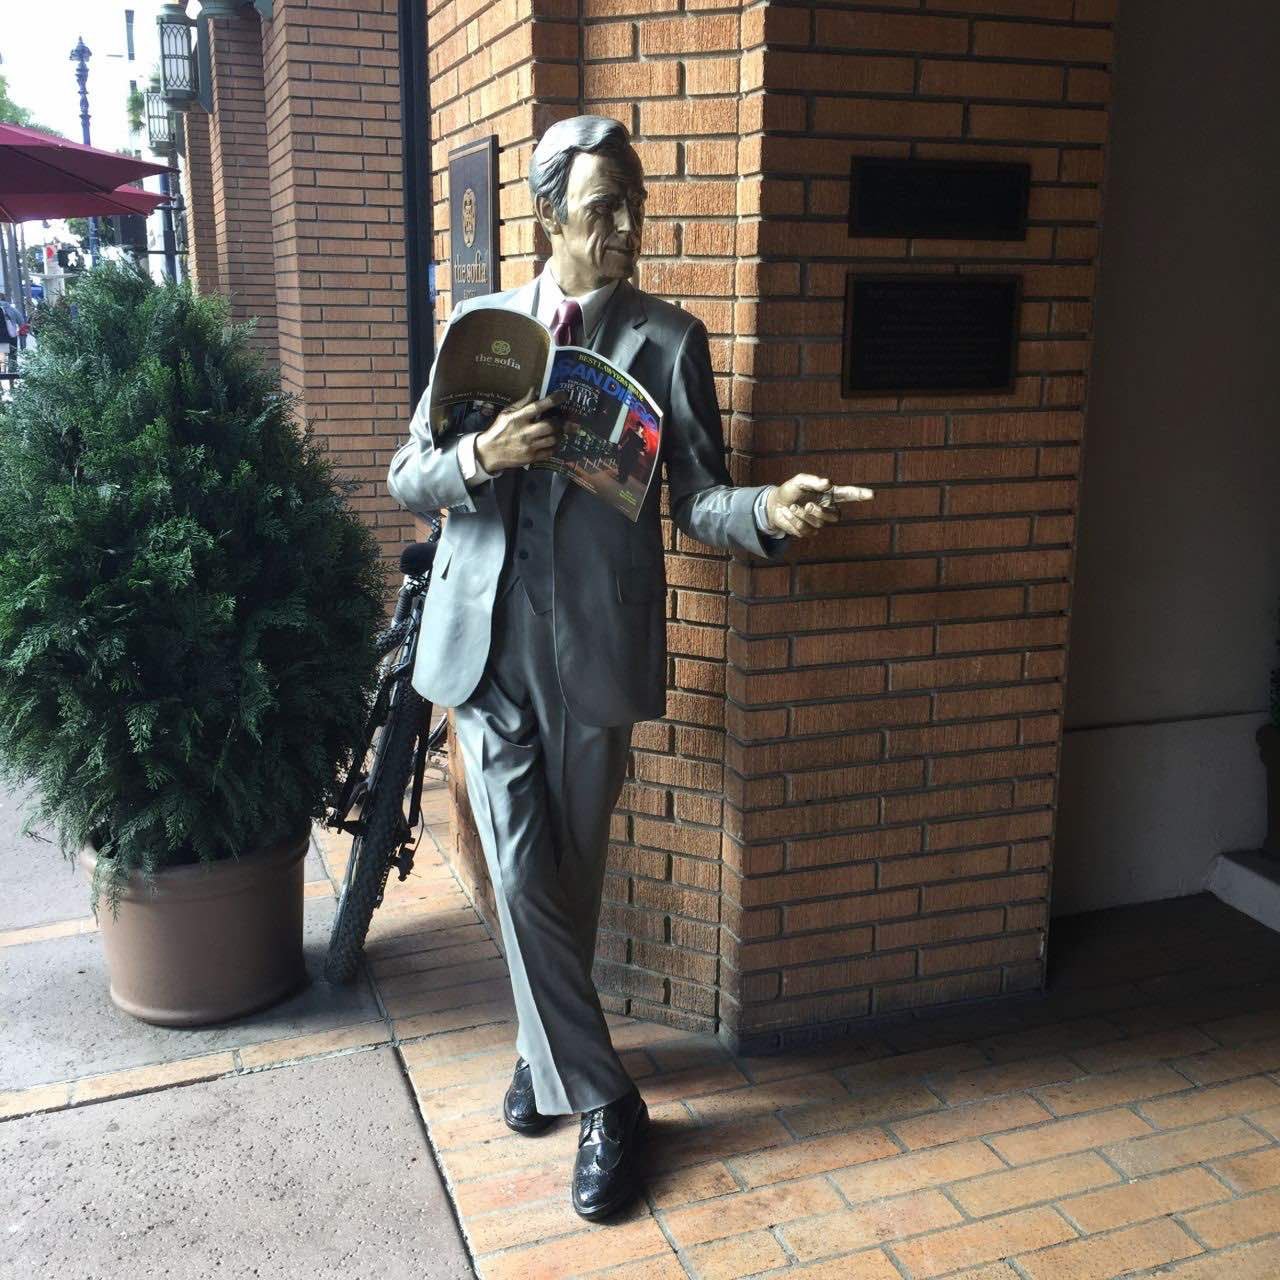 bronze statue That-a-Way by Seward Johnson at the entrance of The Sofia Hotel in San Diego